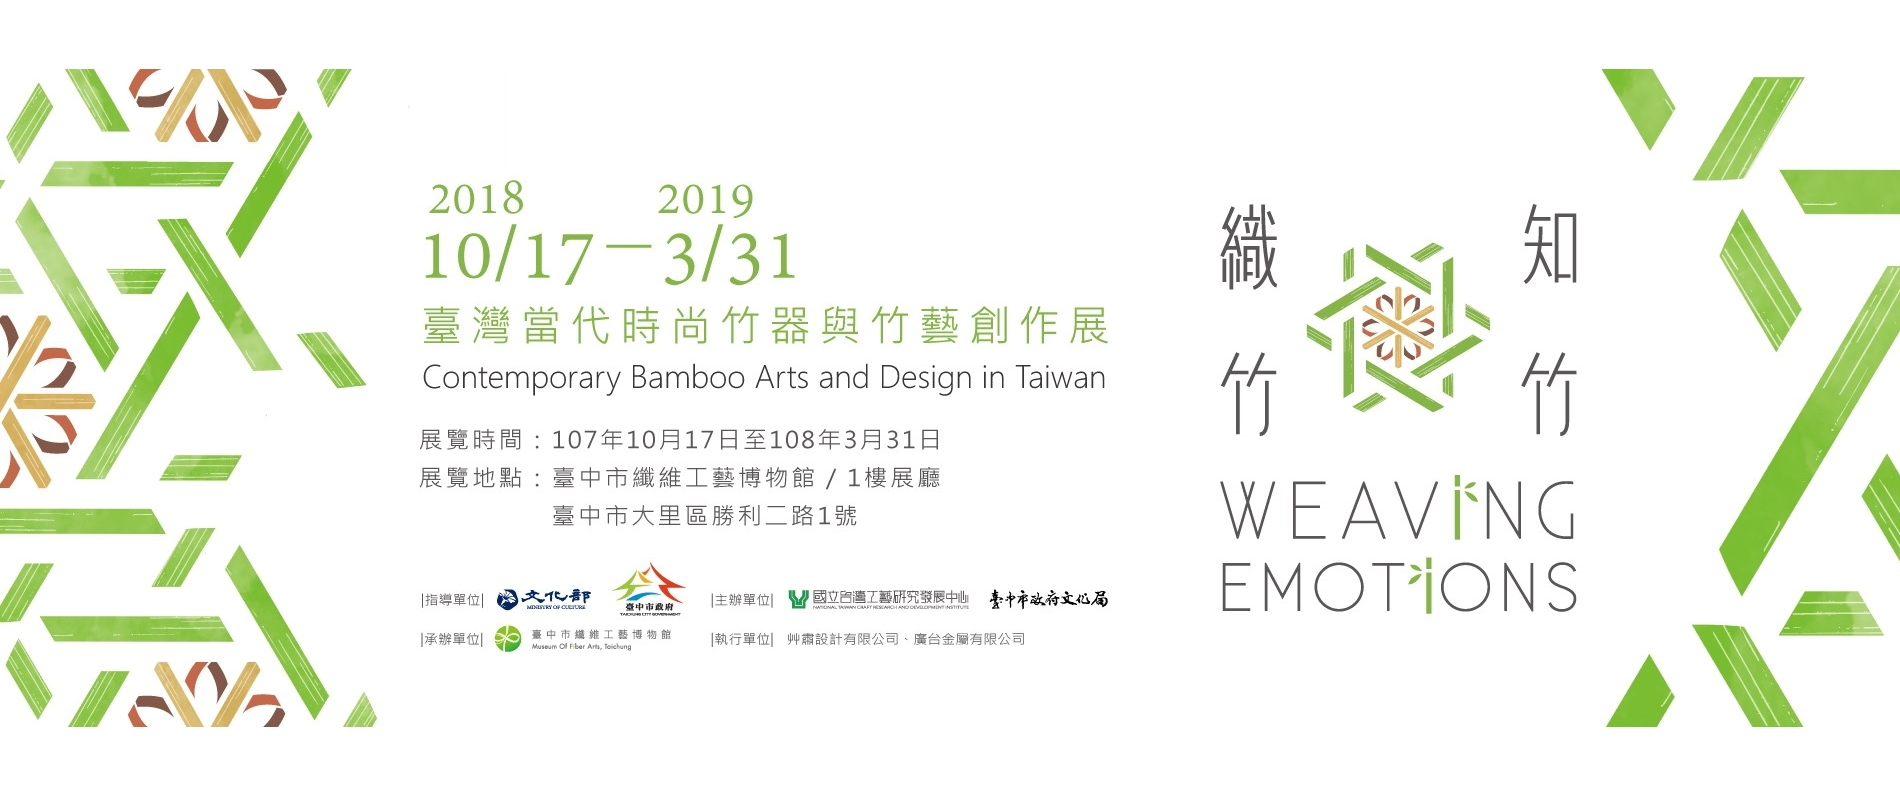 Weaving Emotions: Contemporary Bamboo Arts and Design in Taiwan[另開新視窗]